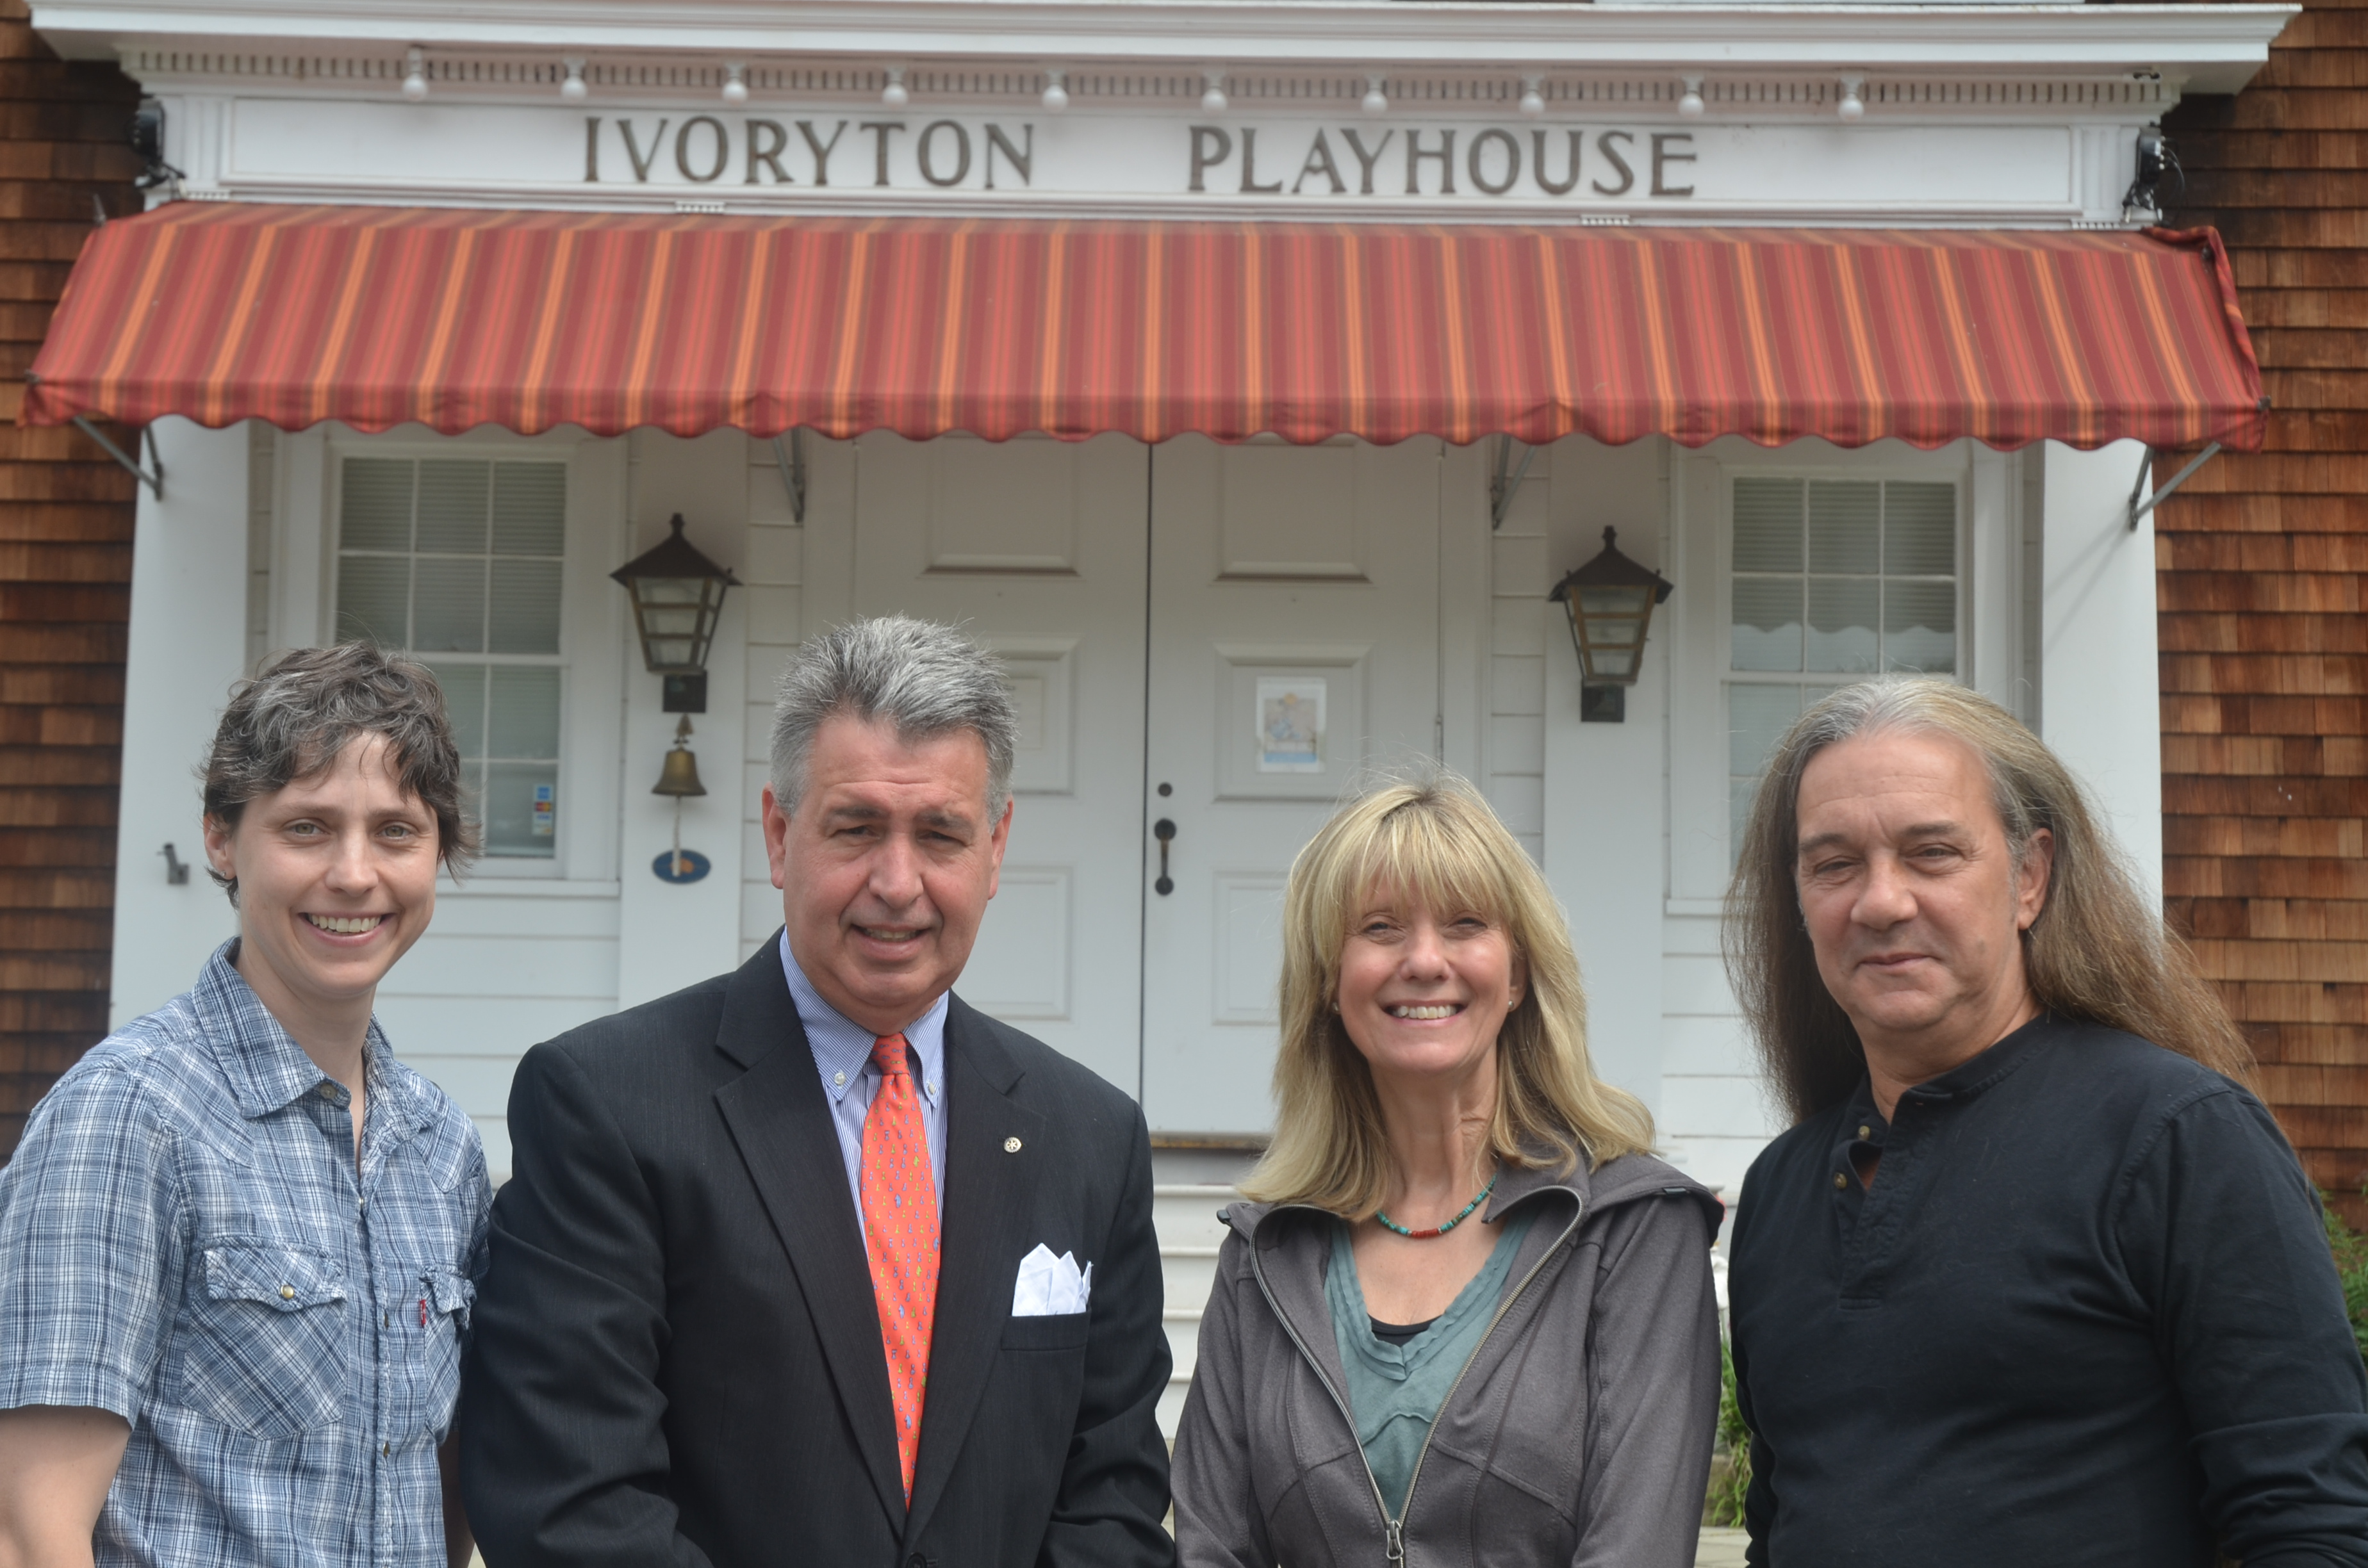 Donation to Ivoryton Playhouse for Lights